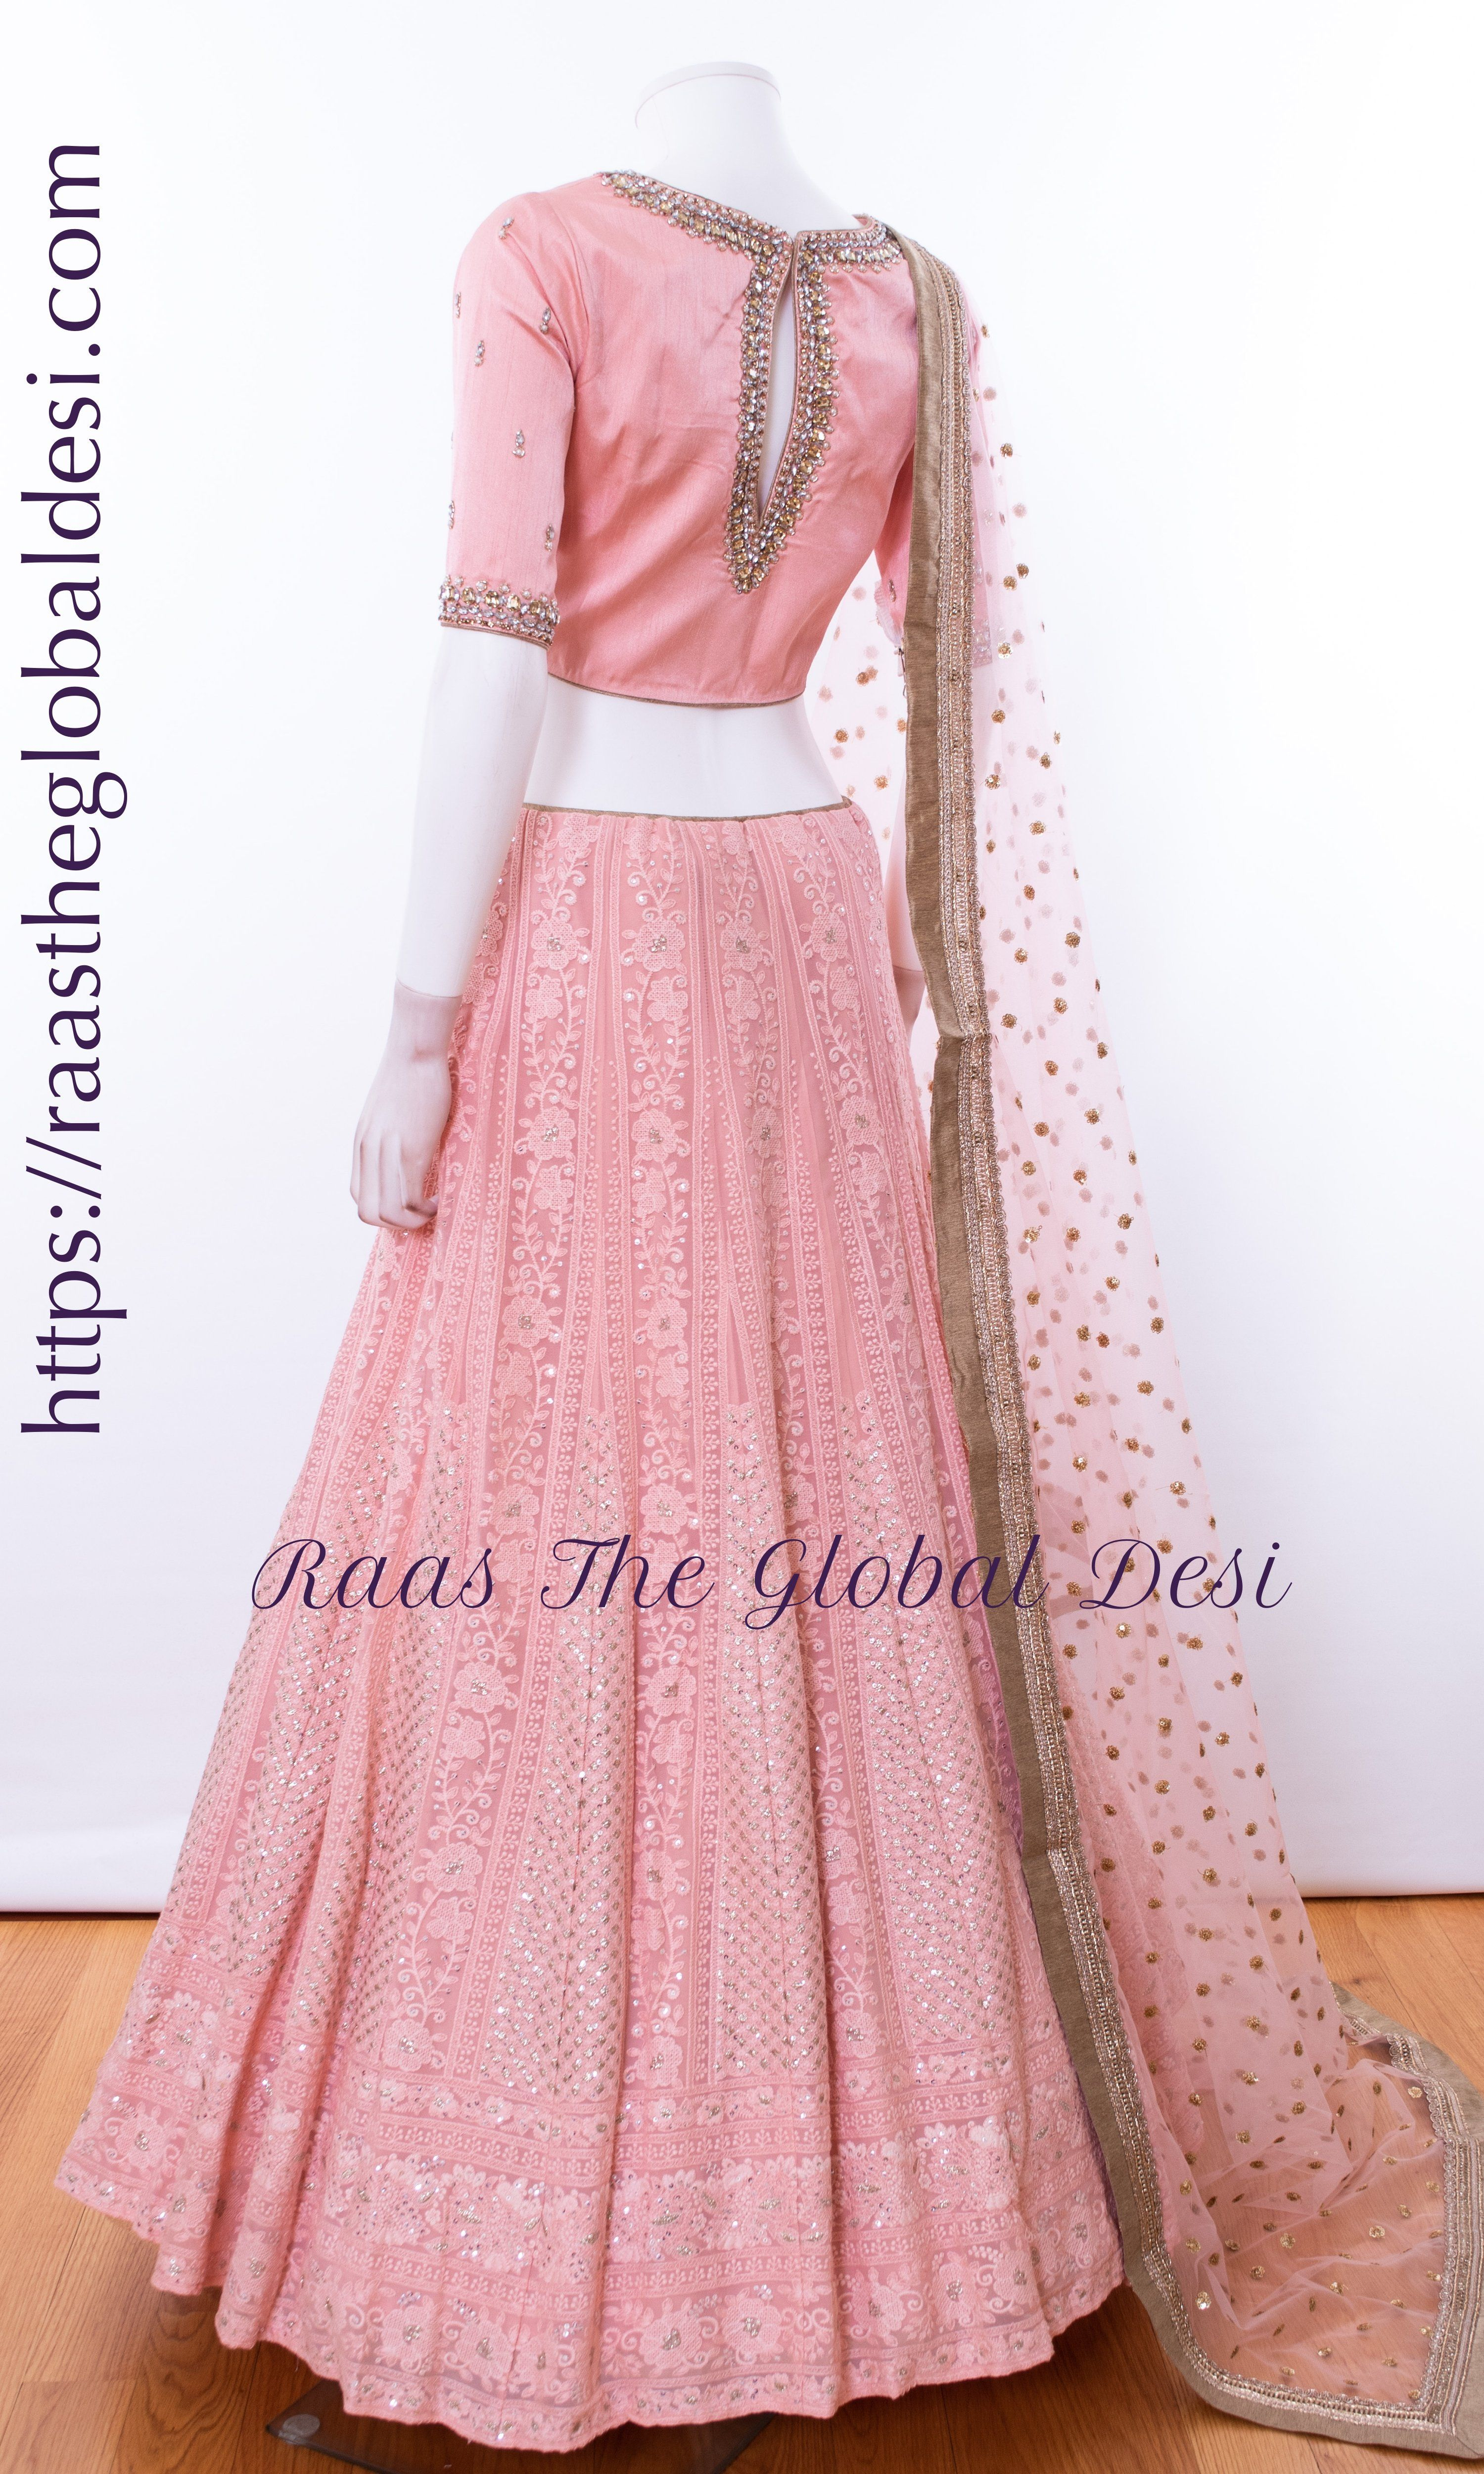 Pin By Maha Chander On Indian Fashion Indian Outfits Indian Dresses Lehenga Online